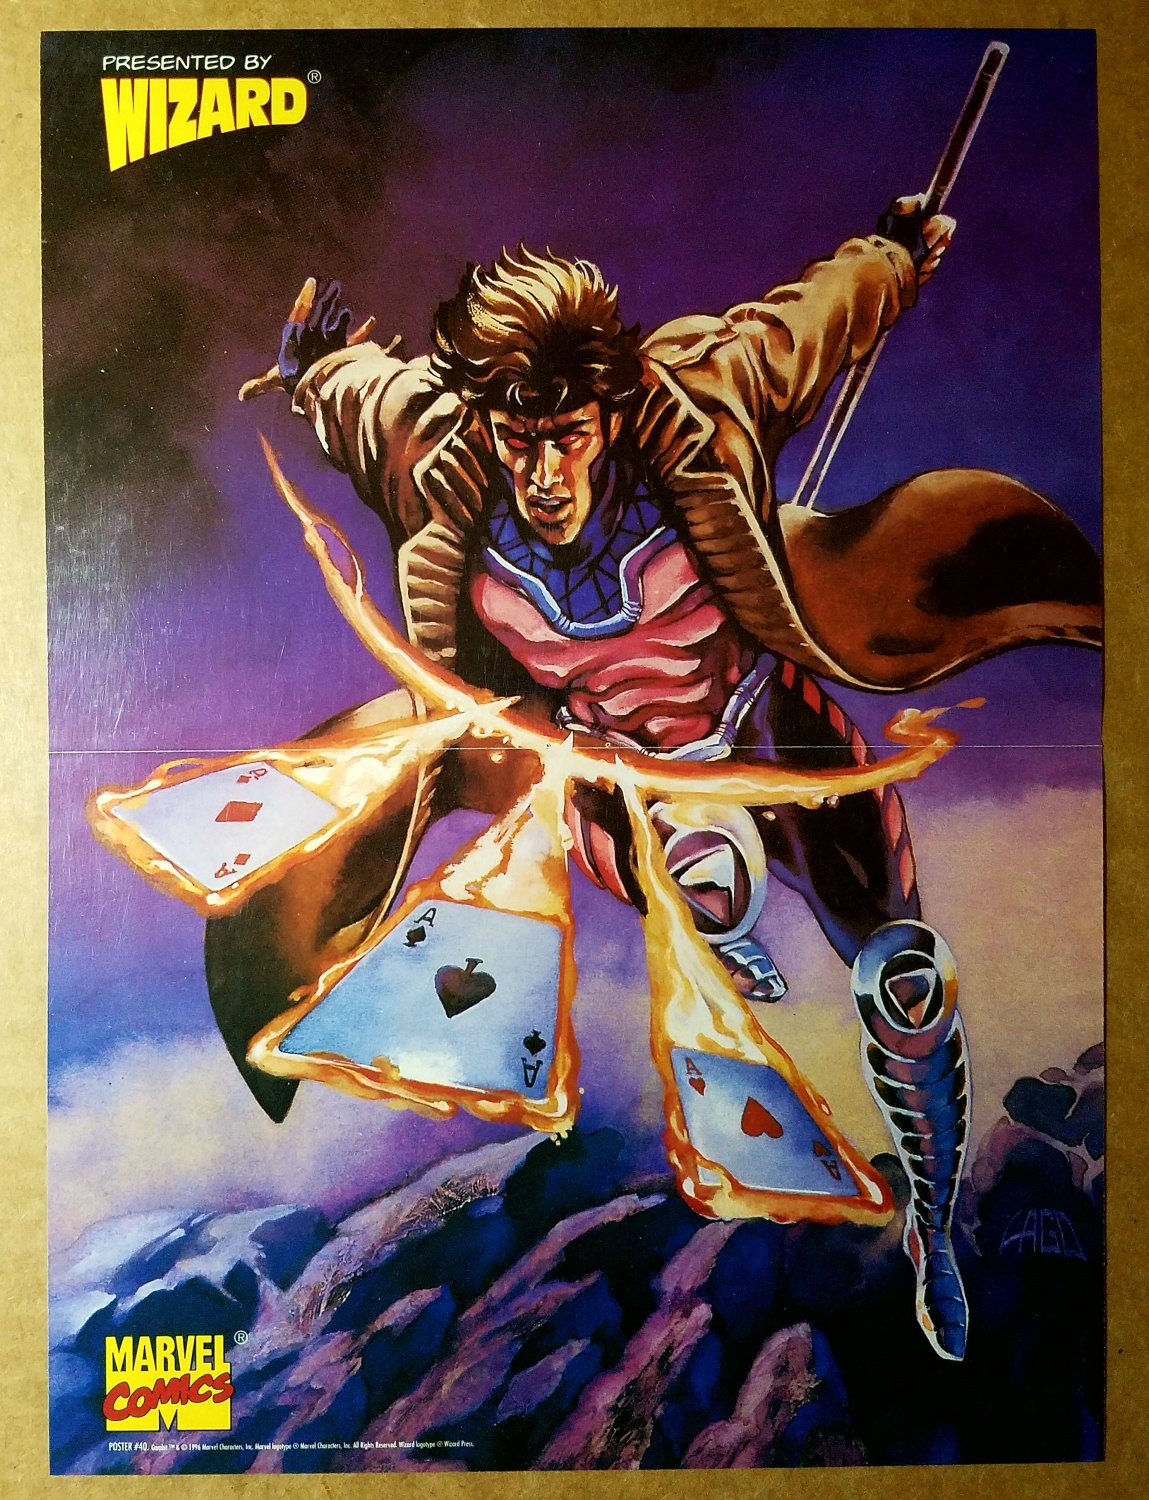 Gambit Marvel Comics Poster by Ray Lago